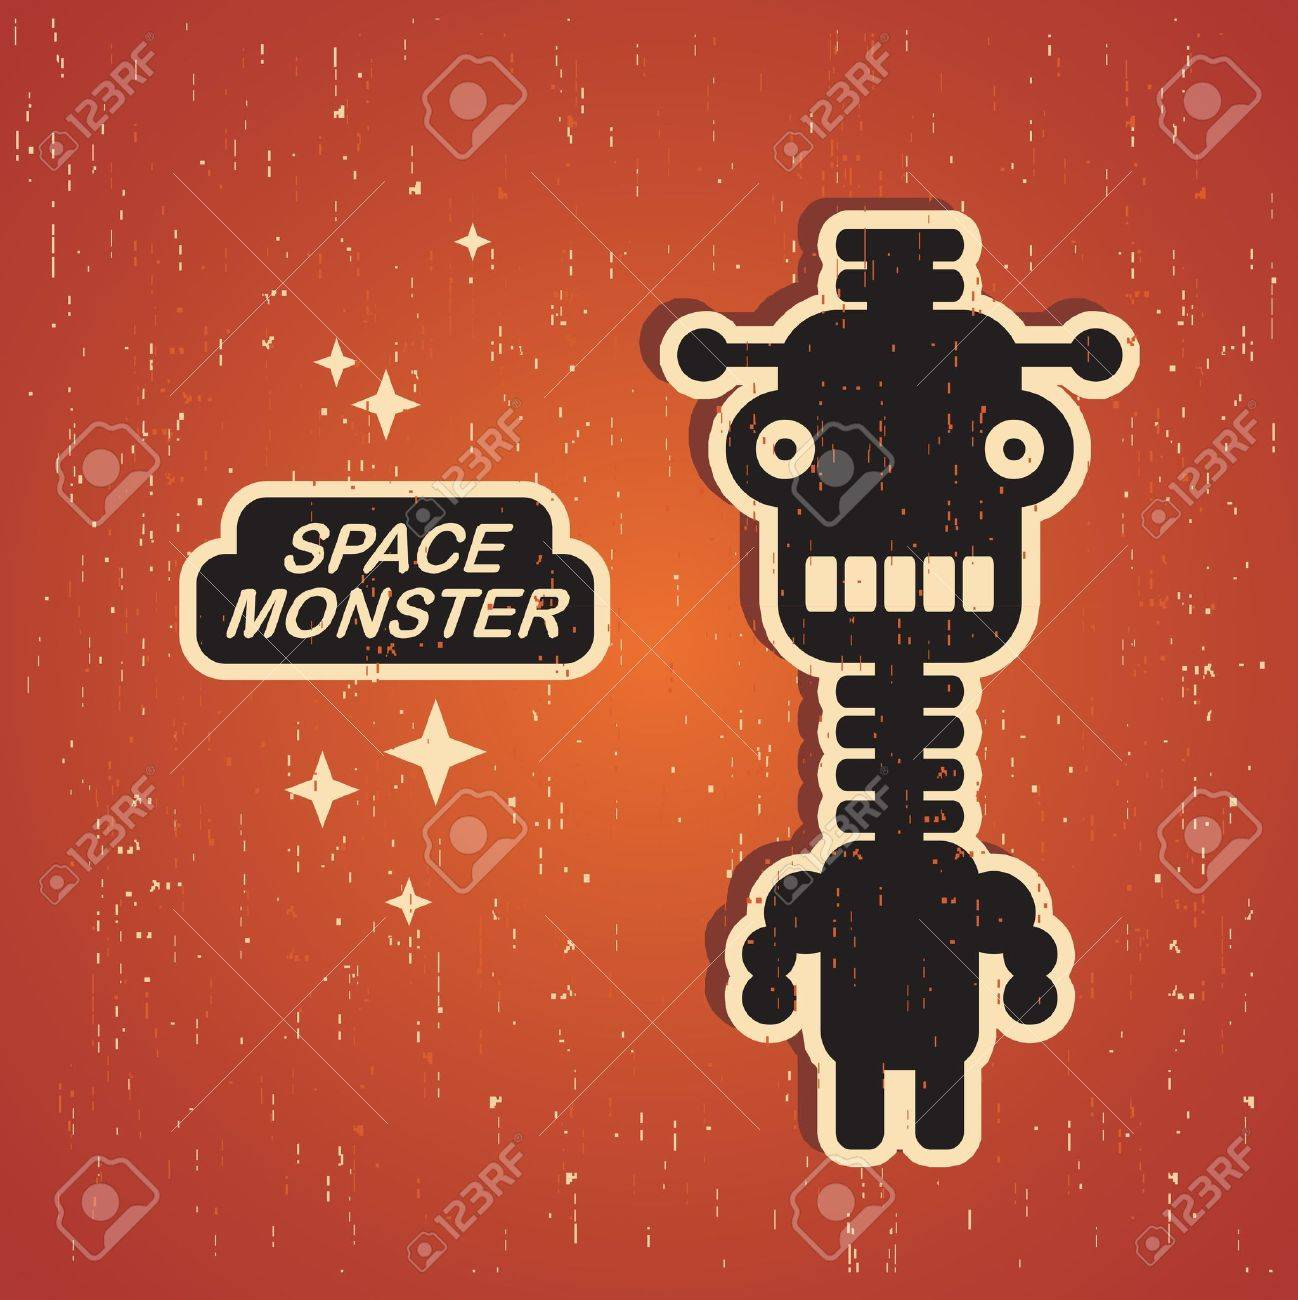 Vintage monster  Retro robot illustration Stock Vector - 15092985